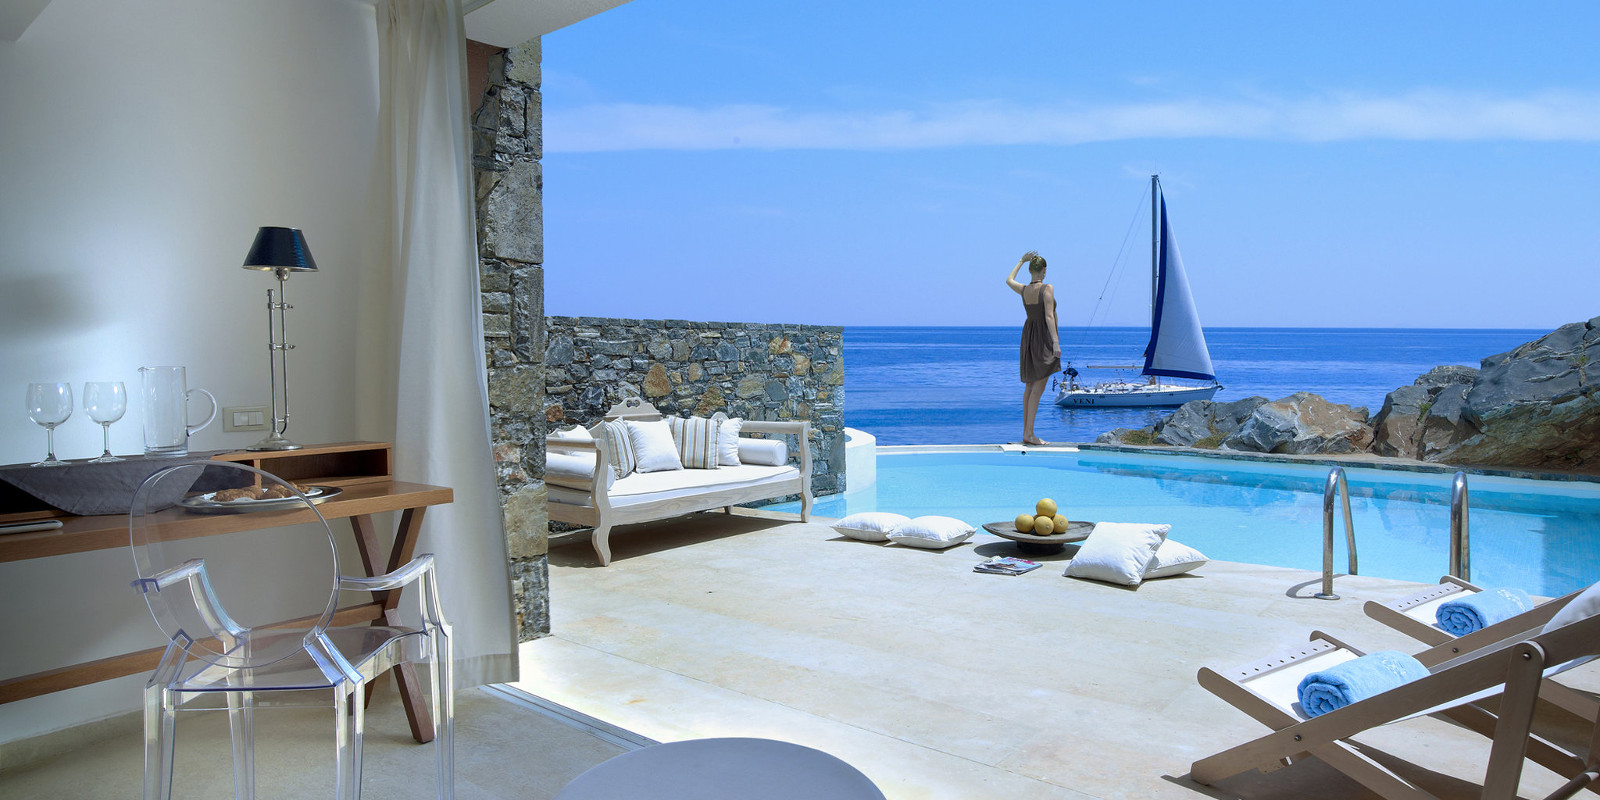 Luxury Hotels for Cheap